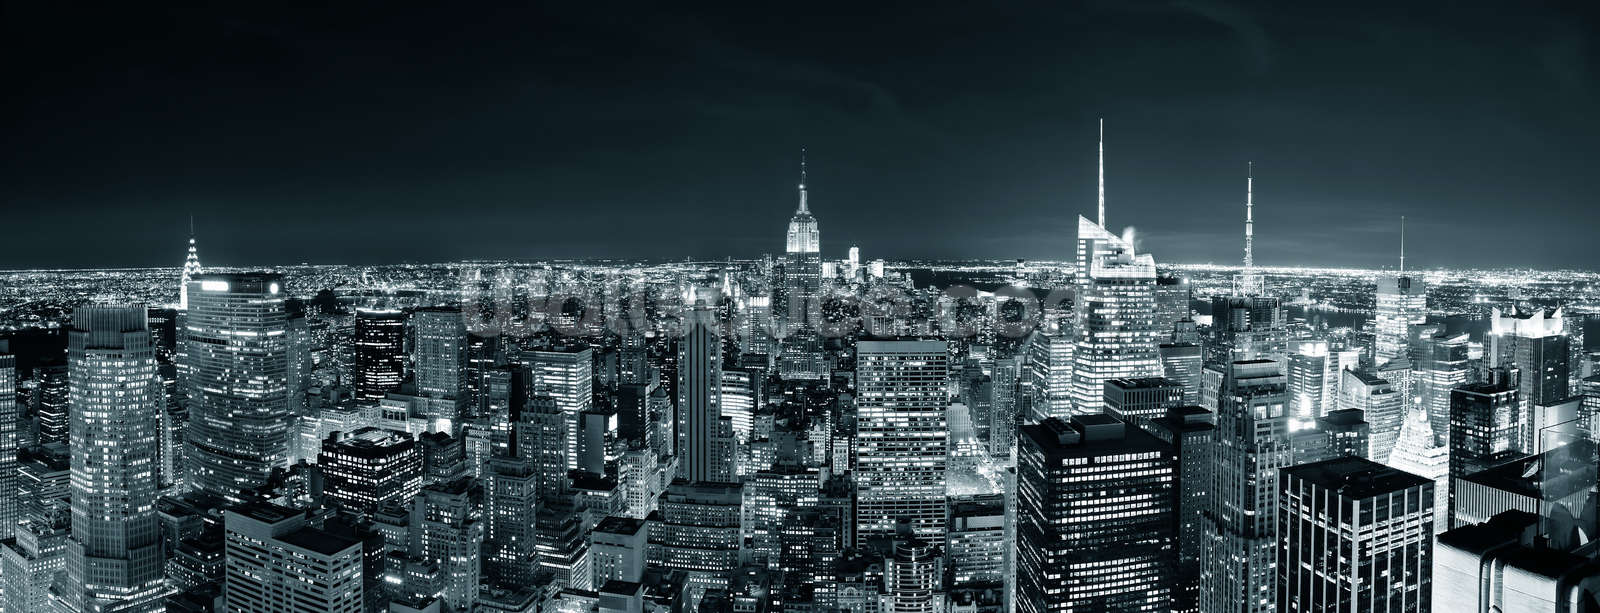 New York Manhattan Skyline Wallpaper Mural